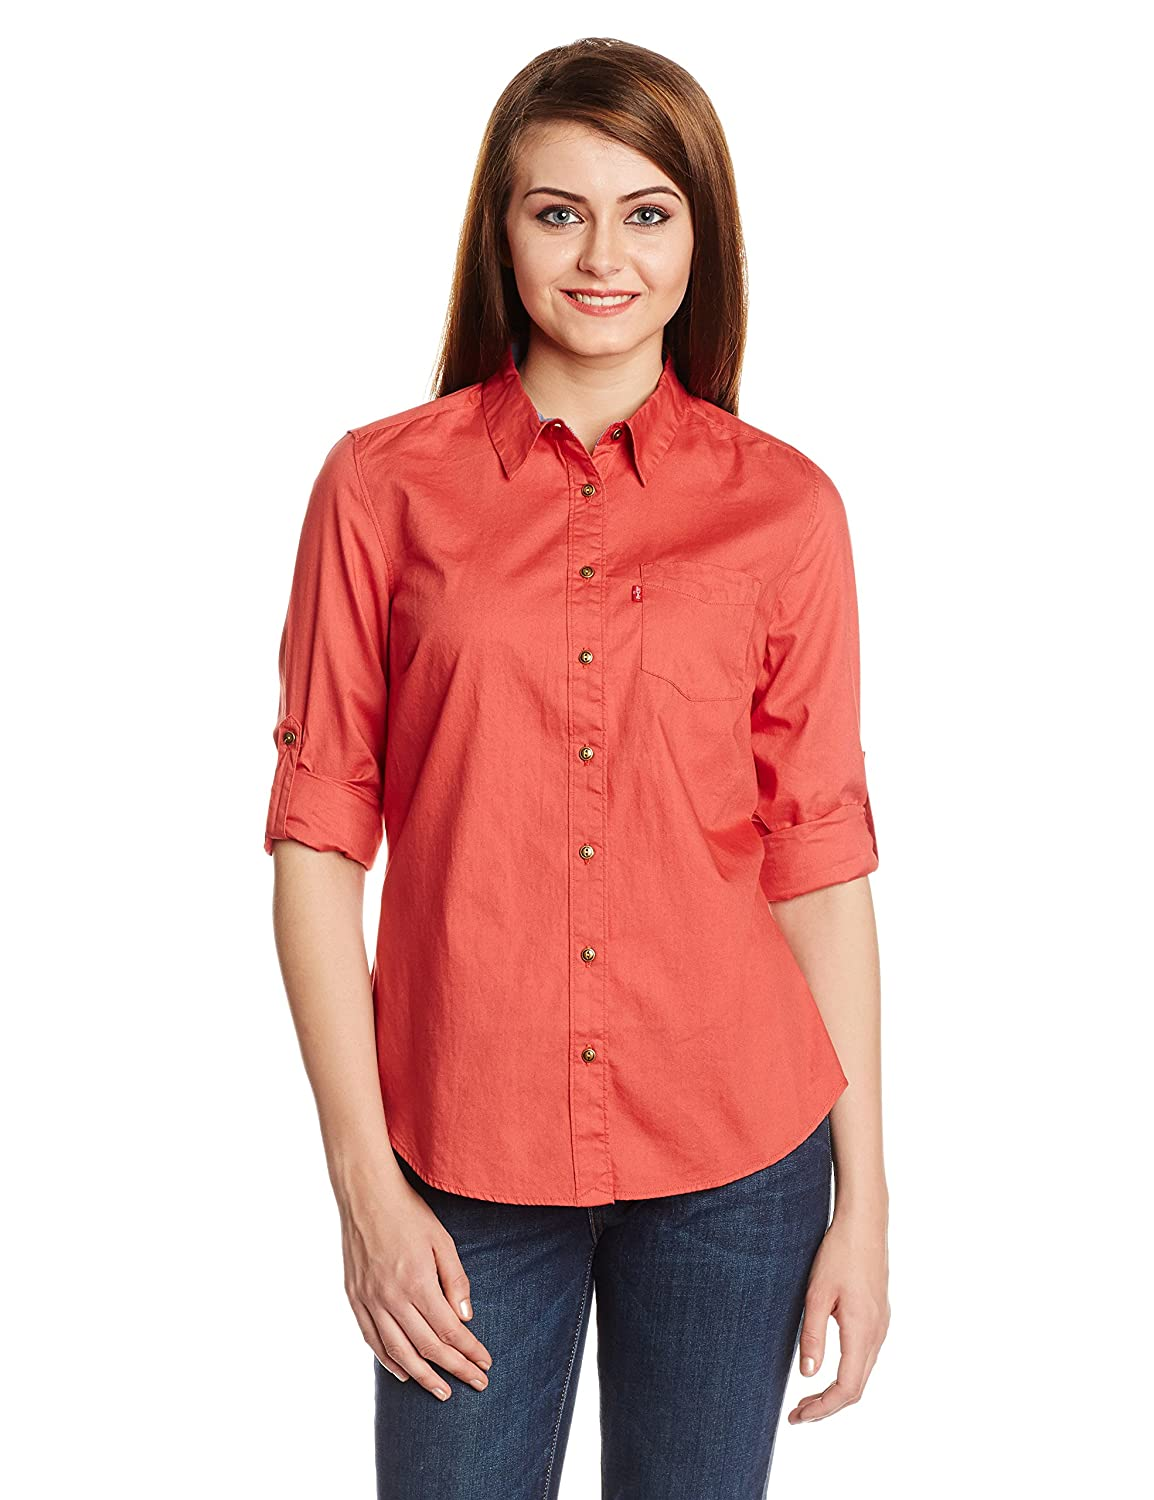 819QYQ2rUpL._UL1500_ Levi's Clothing 50% off or more from Rs. 219 – Amazon